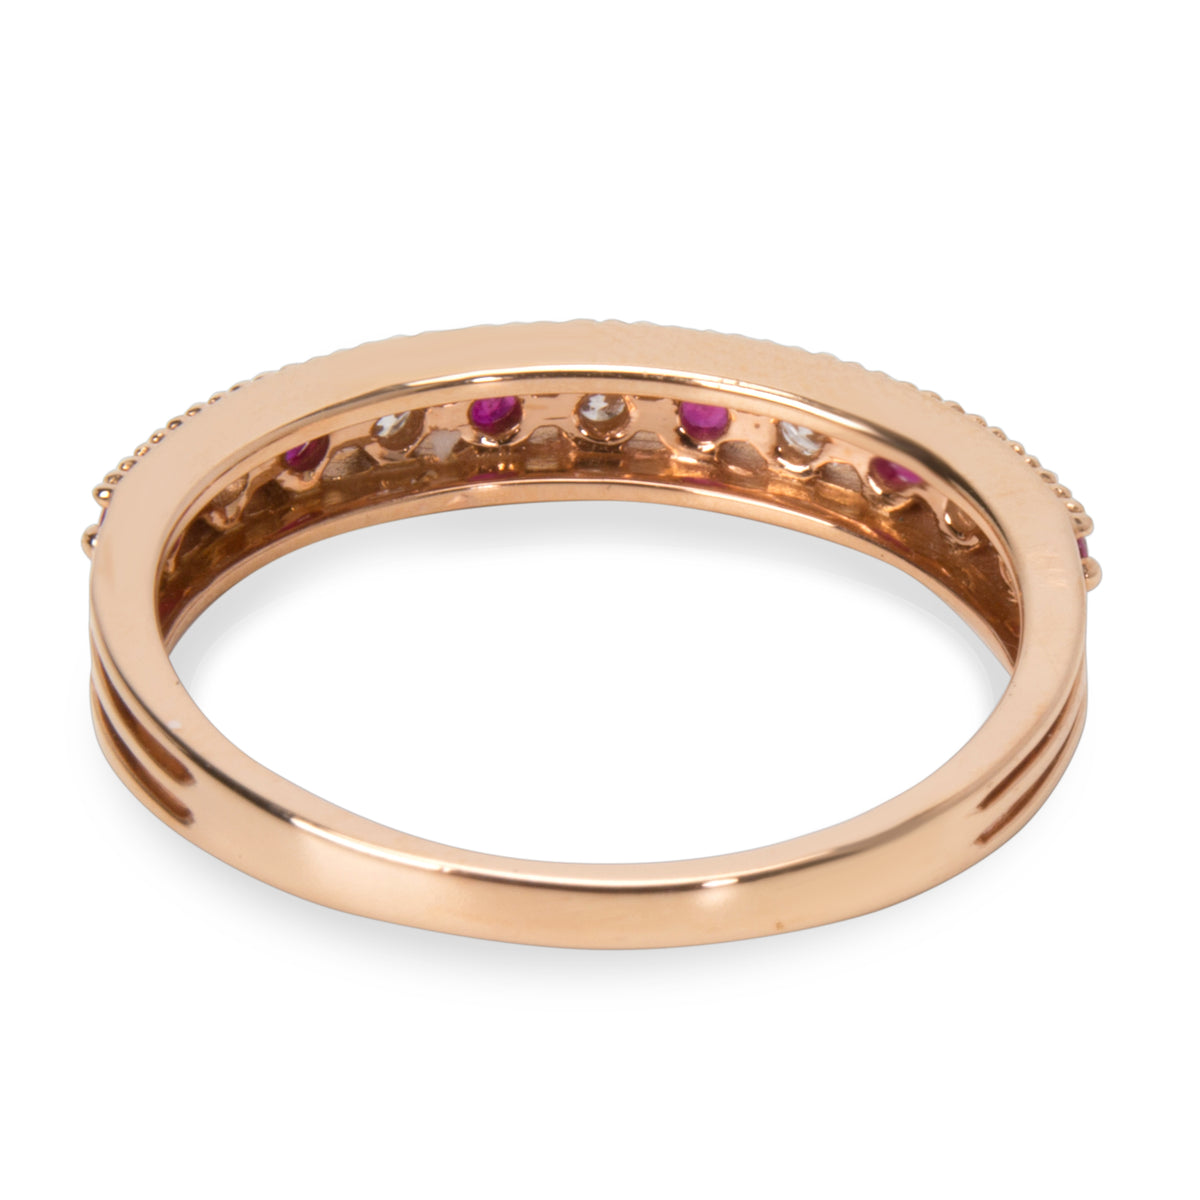 Stackable Diamond & Ruby Ring in 18KT Pink Gold 0.30 ctw